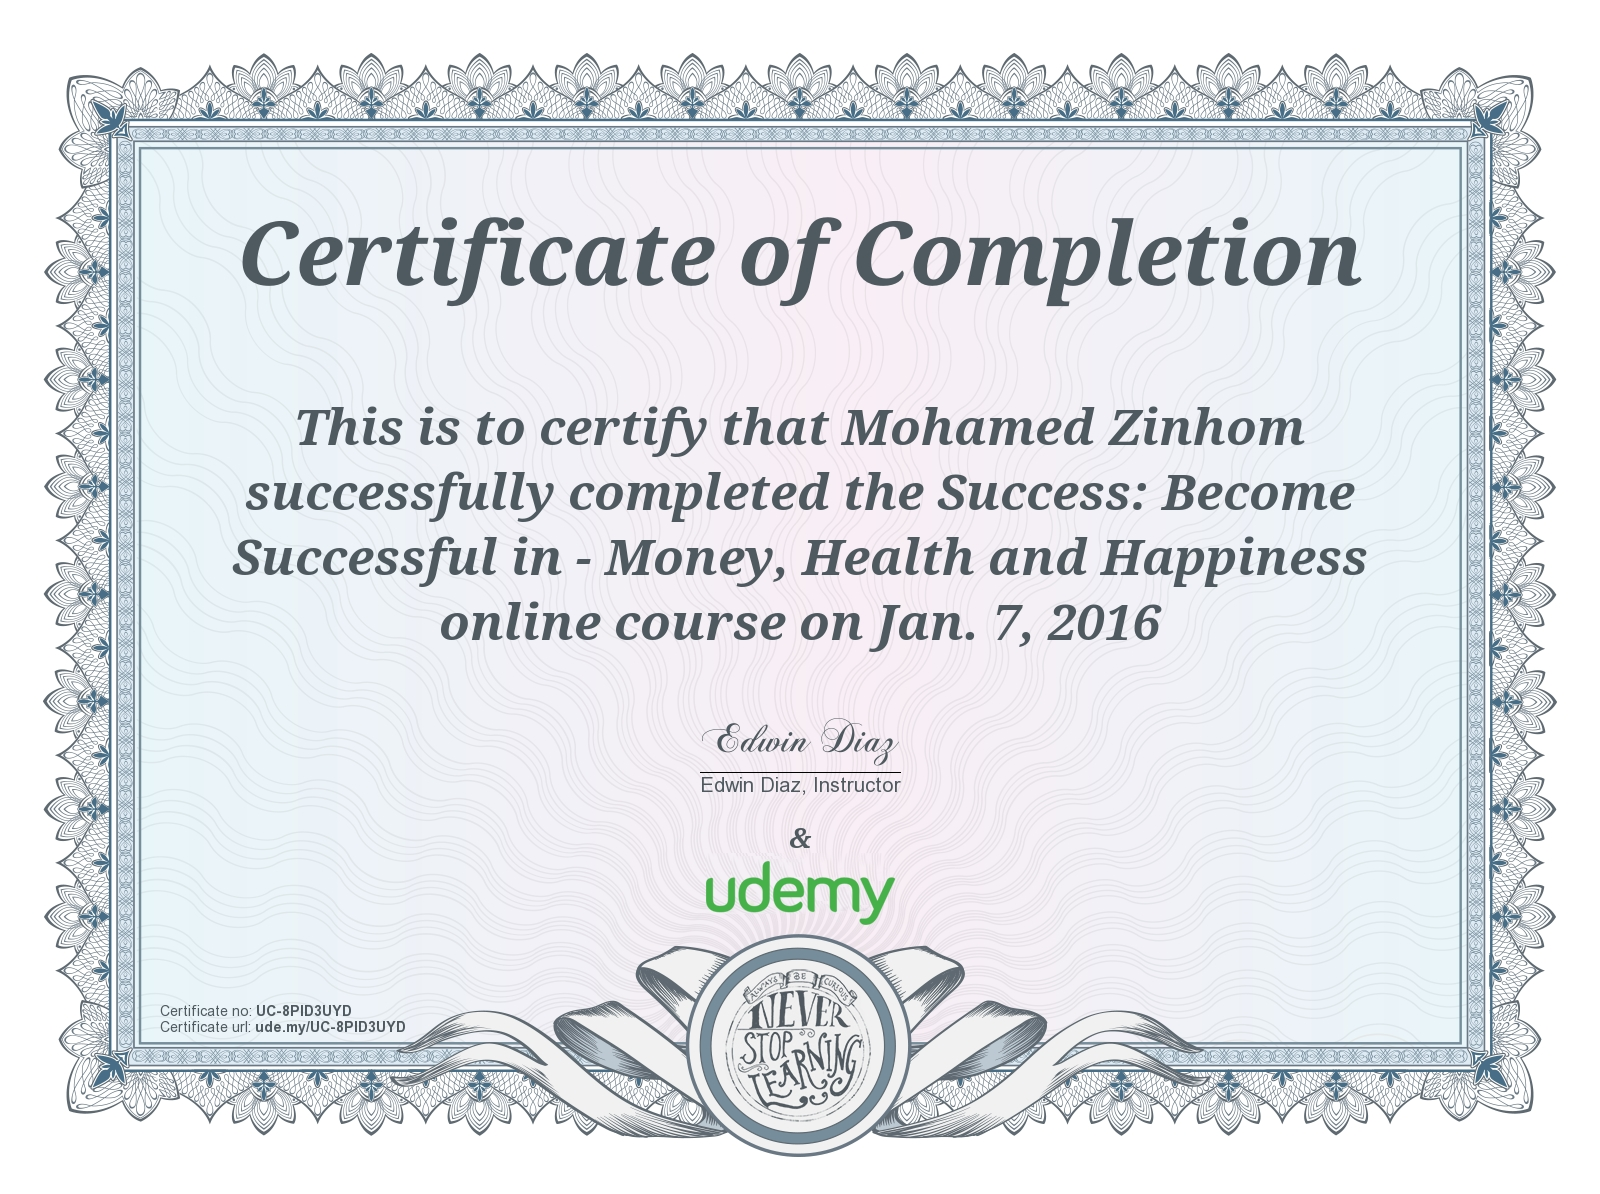 Certificate Of Completion become successful in money health and happyness